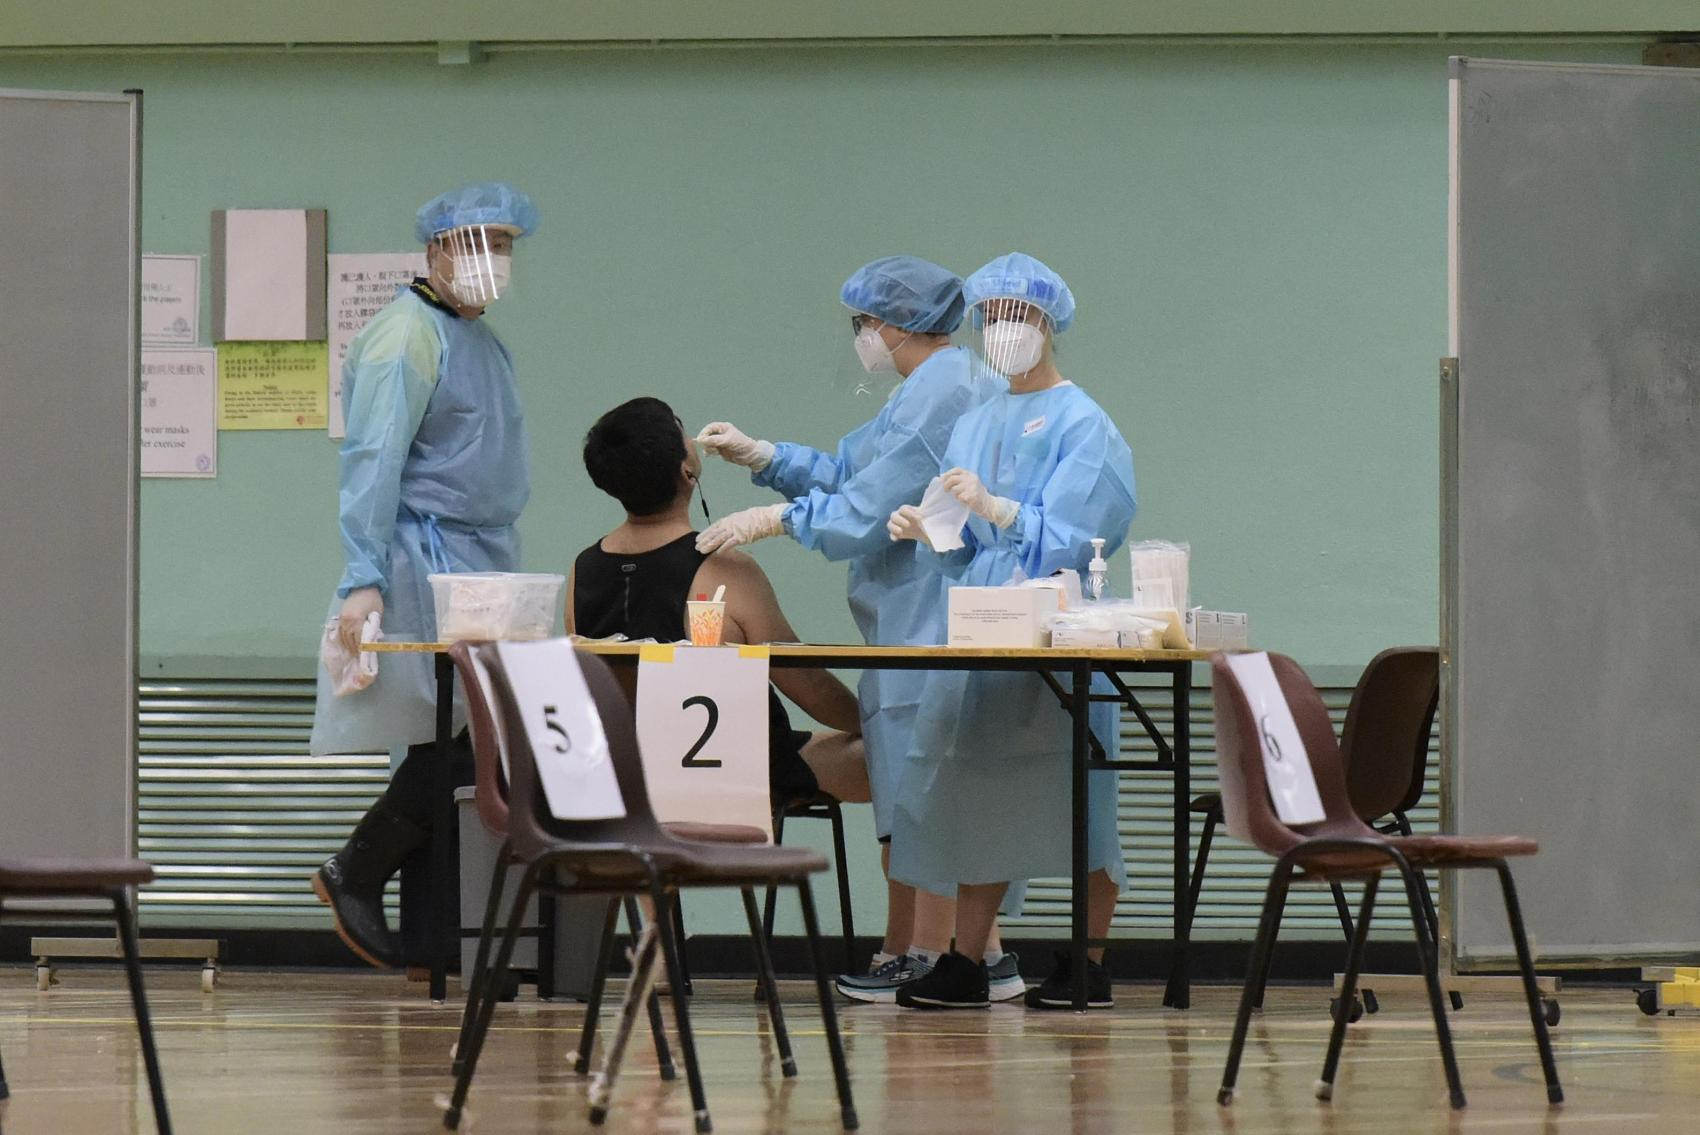 Hong Kong to relax anti-epidemic measures from Friday: official